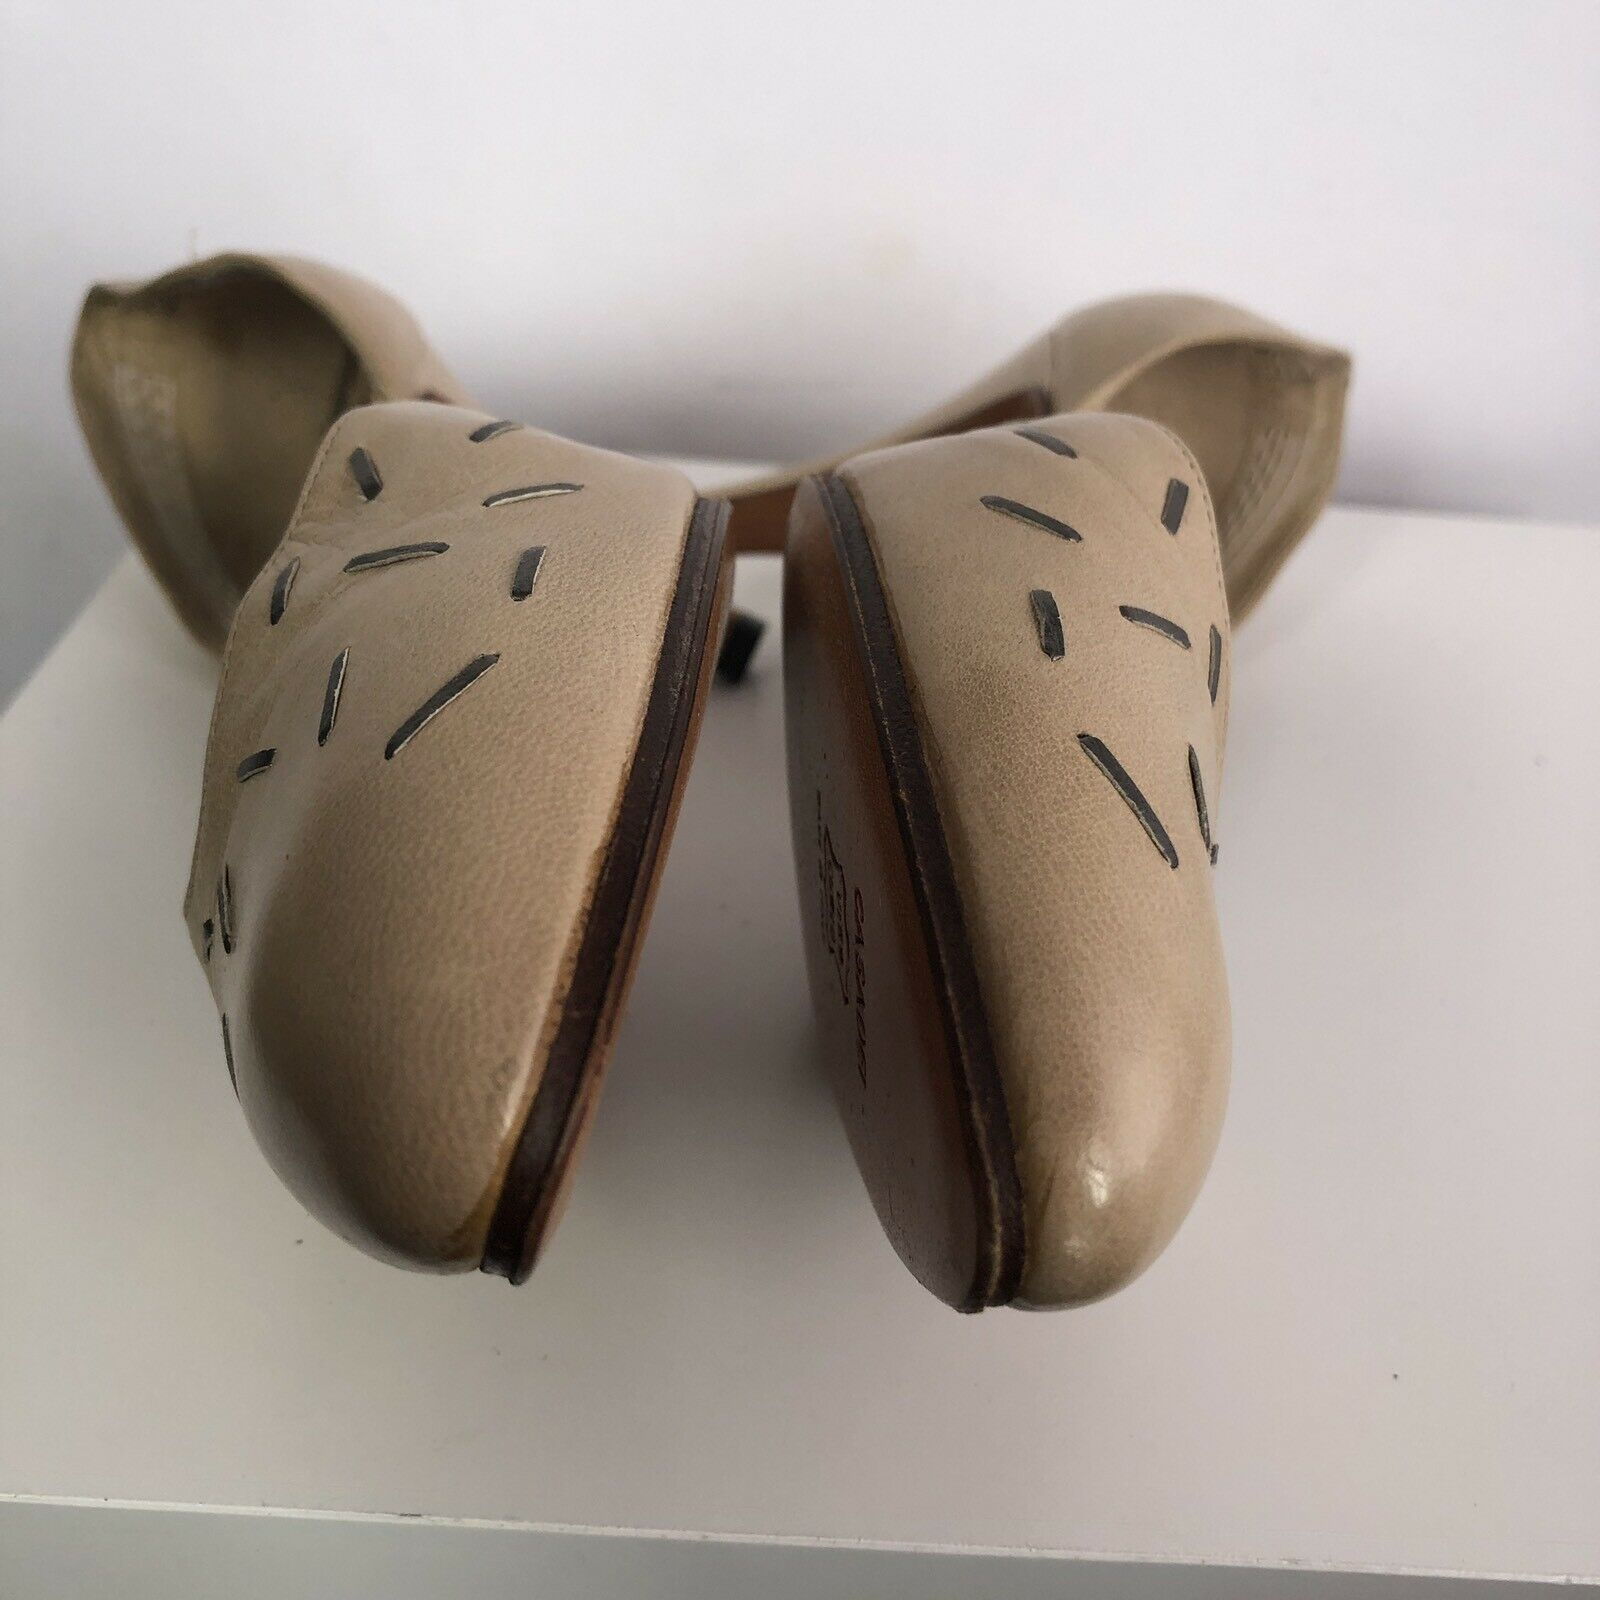 Casadei Pumps 7.5 7.5 7.5 Beige Nude D'Orsay Leather  3 Inch Heel 1698be